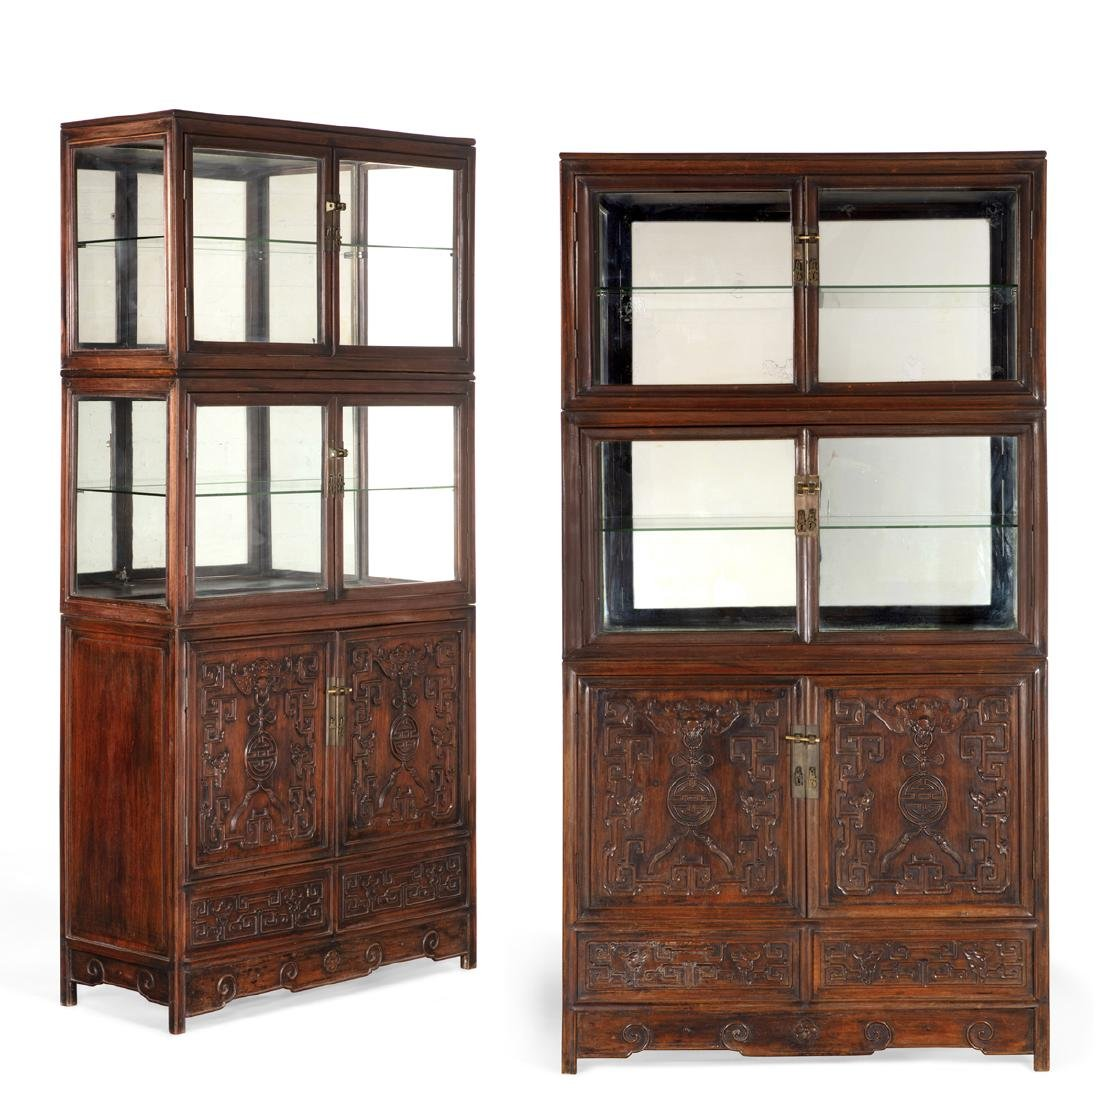 Pair of Chinese carved hardwood display cabinets